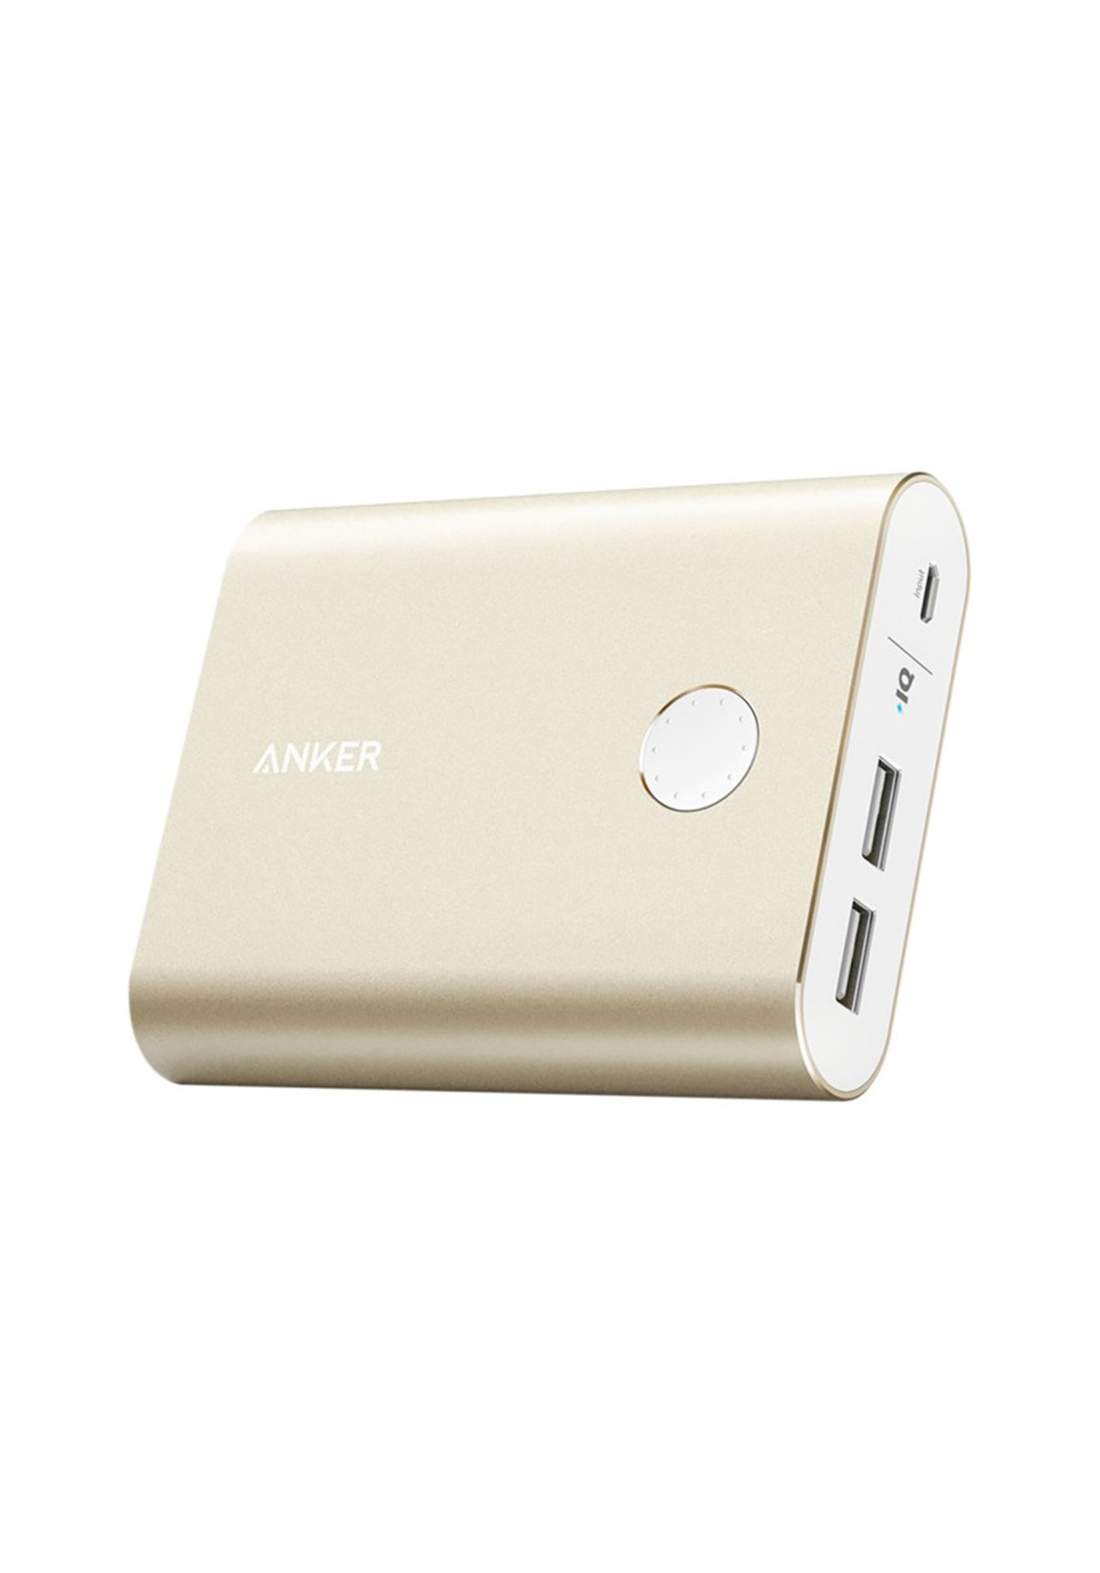 Anker Powerbank Anker PowerCore+ 13400mAh Quick Charge 3.0  A1316HB1 Gold شاحن محمول